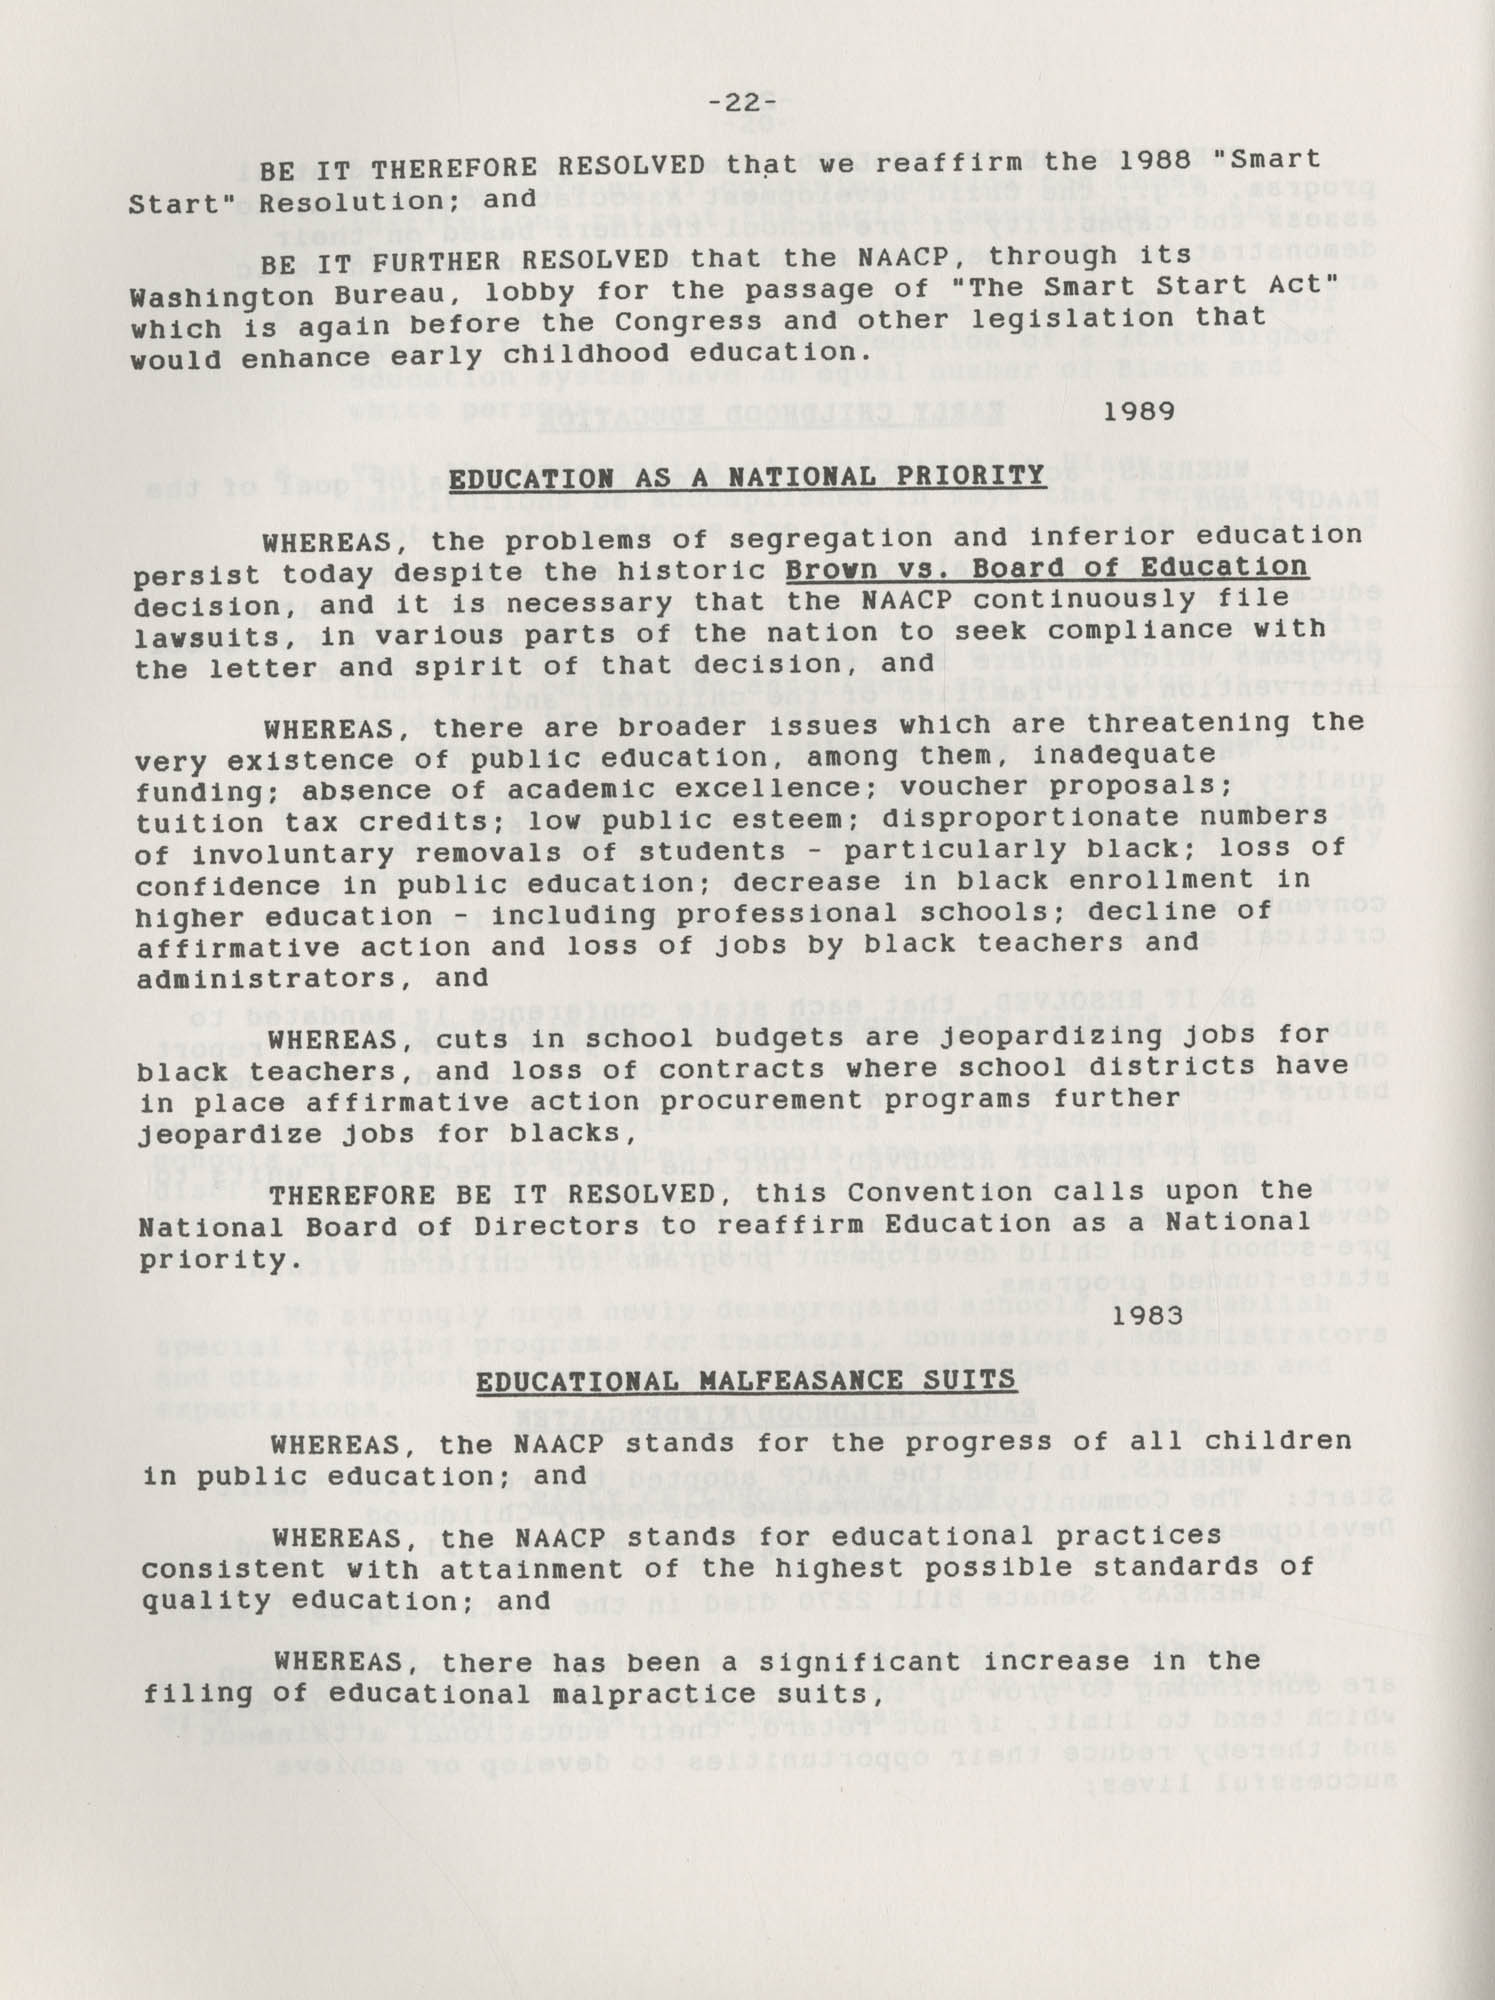 NAACP Resolutions on Education, 1970-1989, Index to Education Resolutions, Page 22